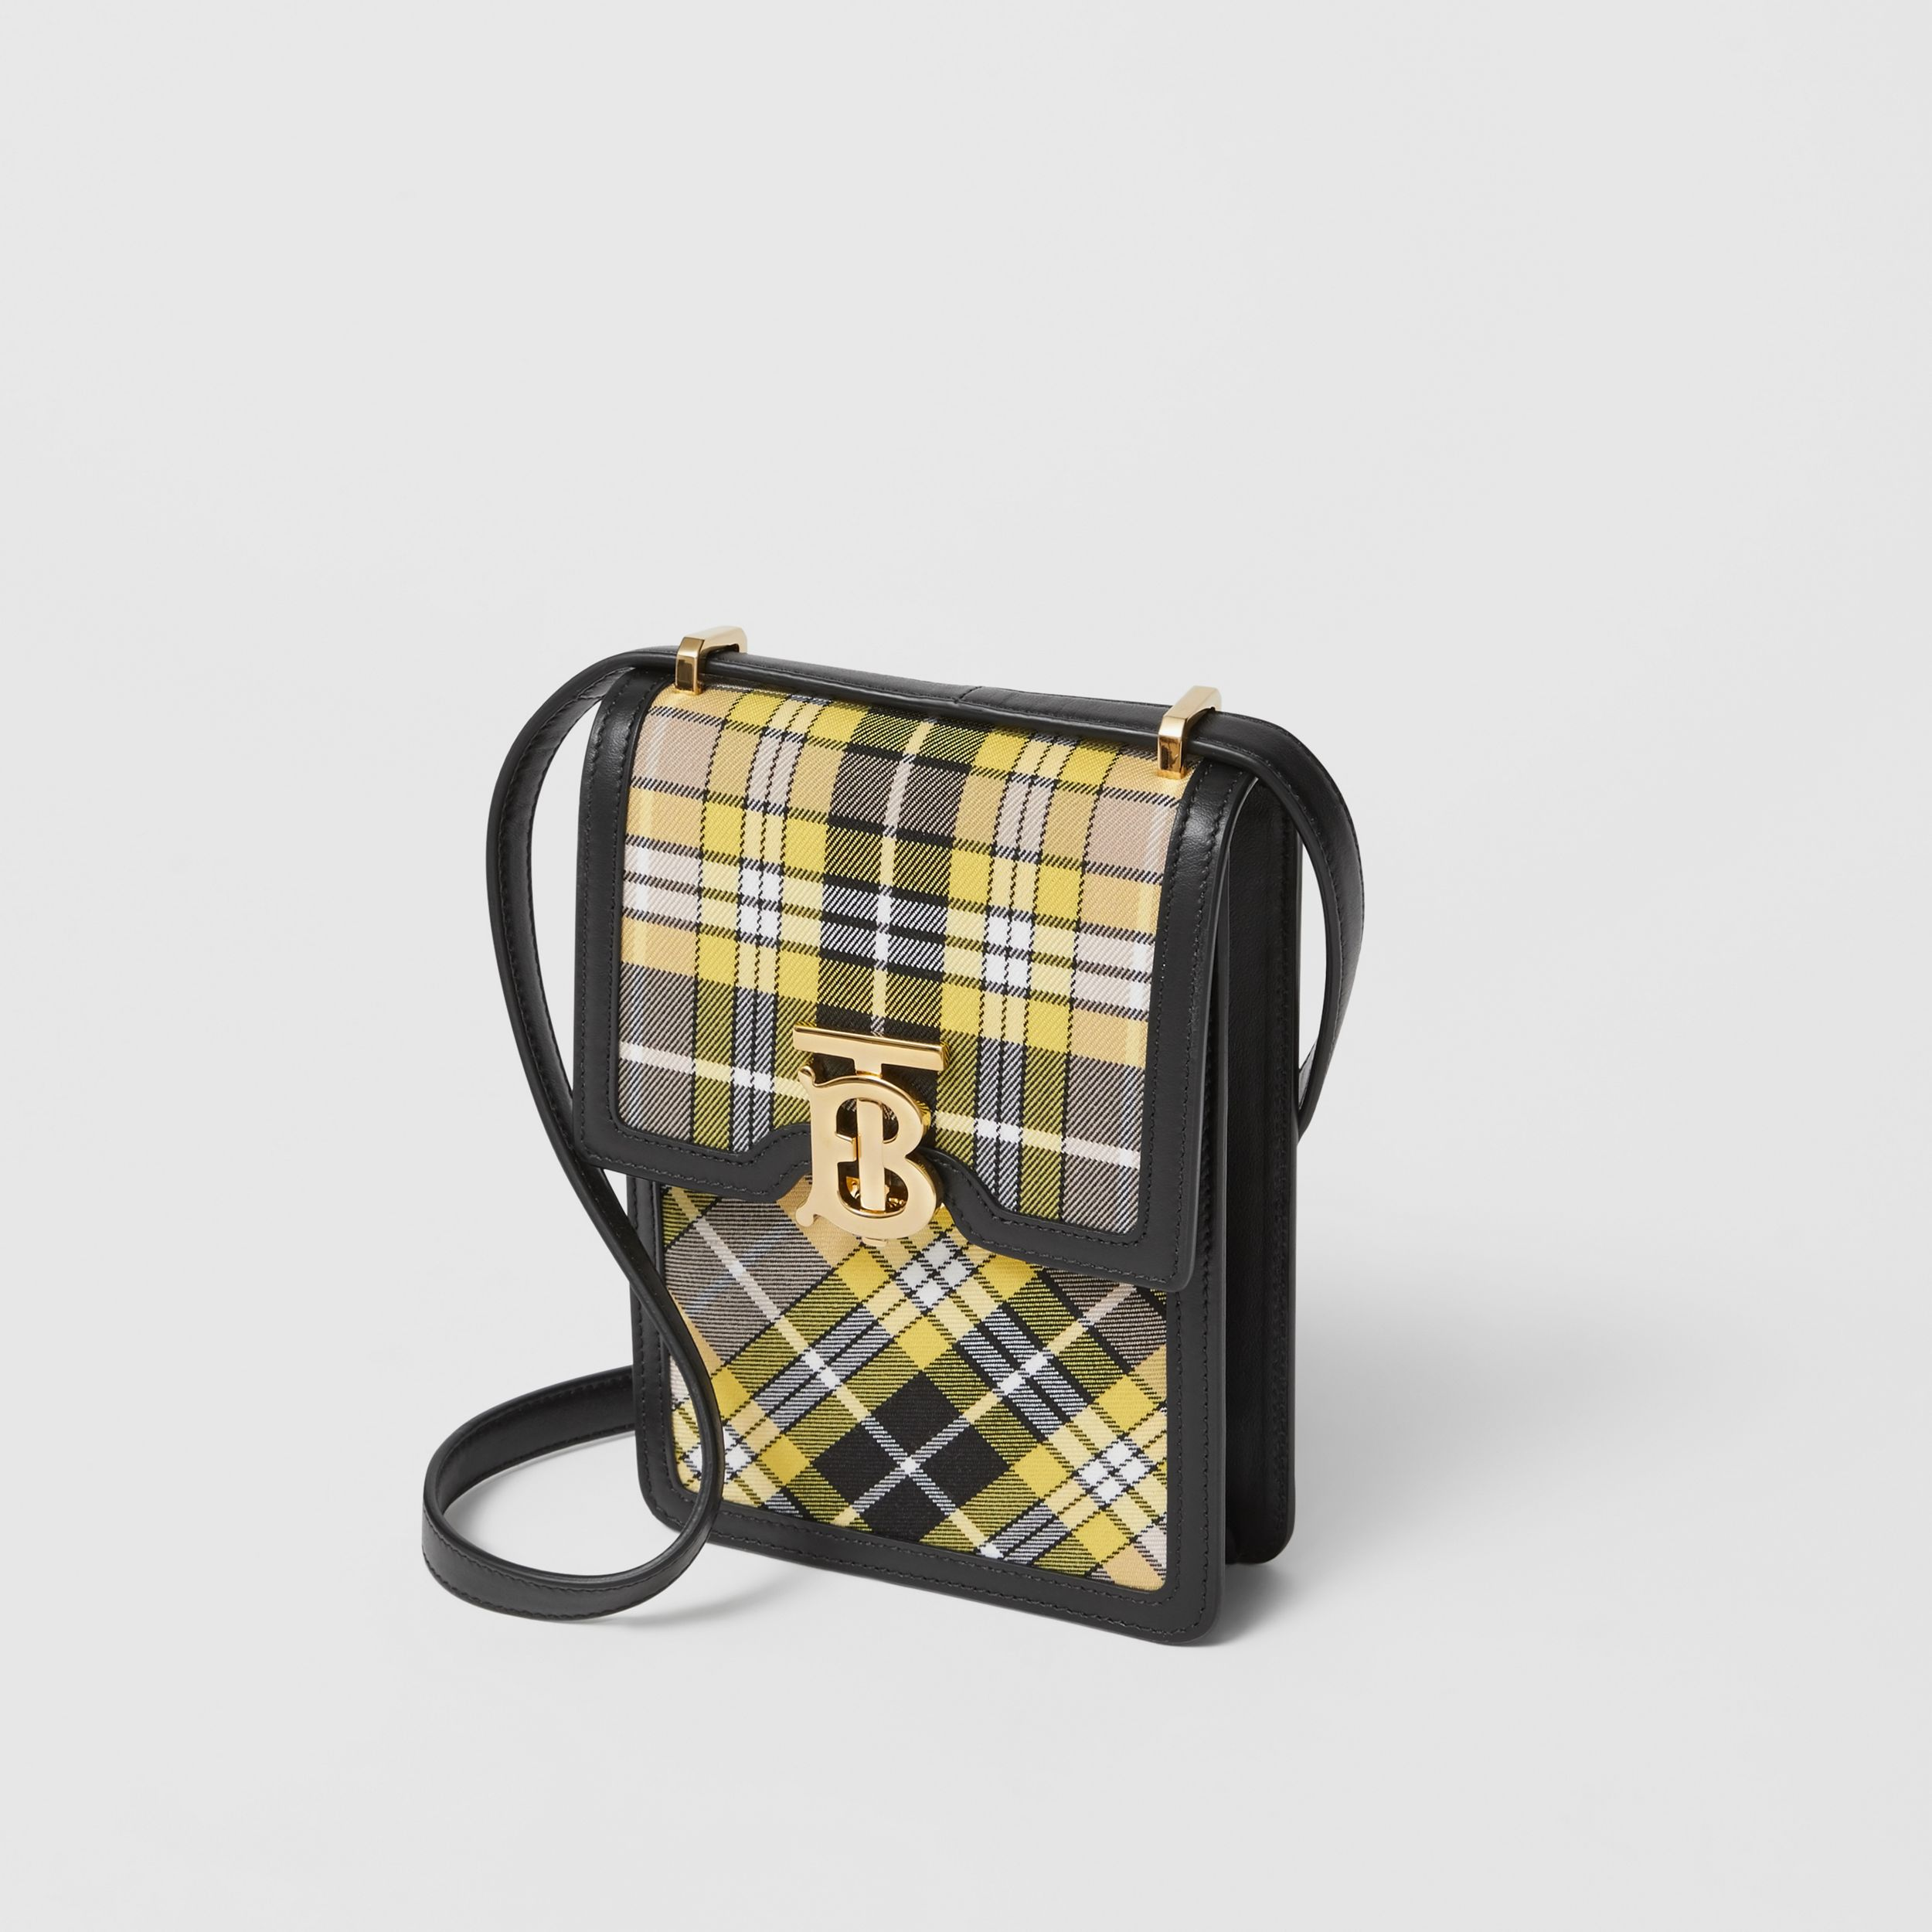 Tartan Cotton and Leather Robin Bag in Marigold Yellow - Women | Burberry - 4